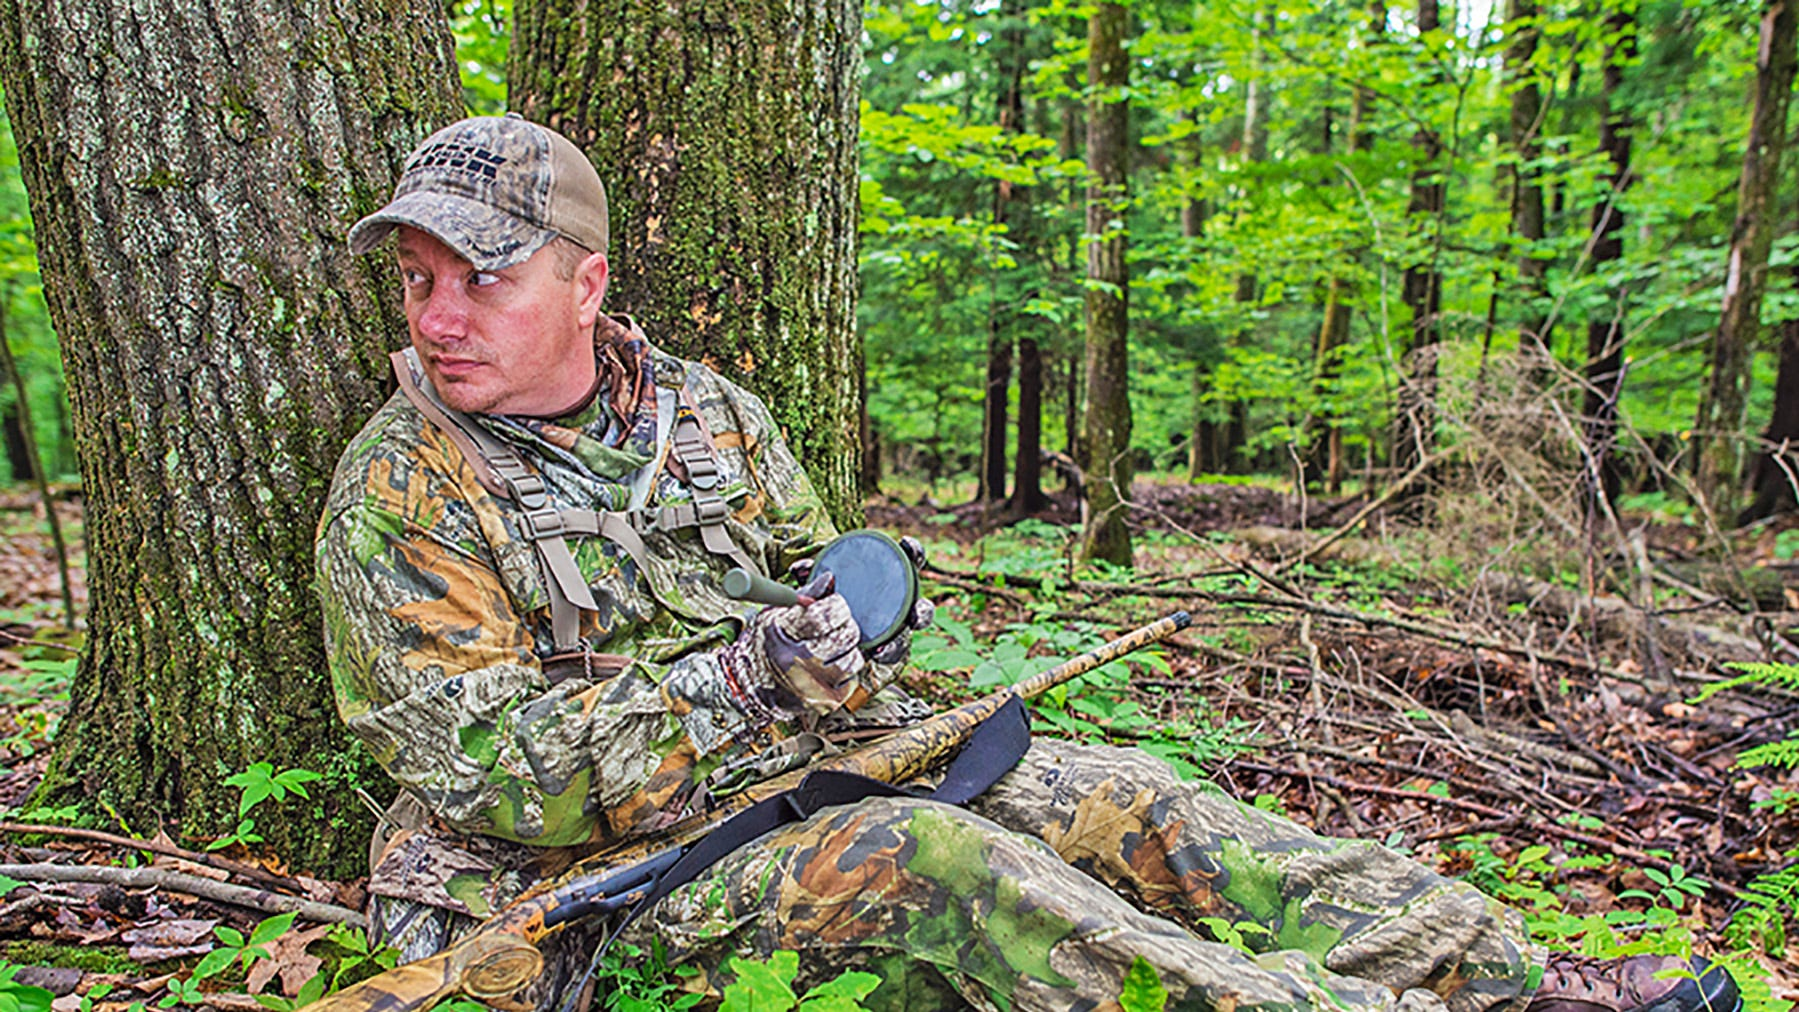 Morrett becomes PGC's voice on outdoors podcast